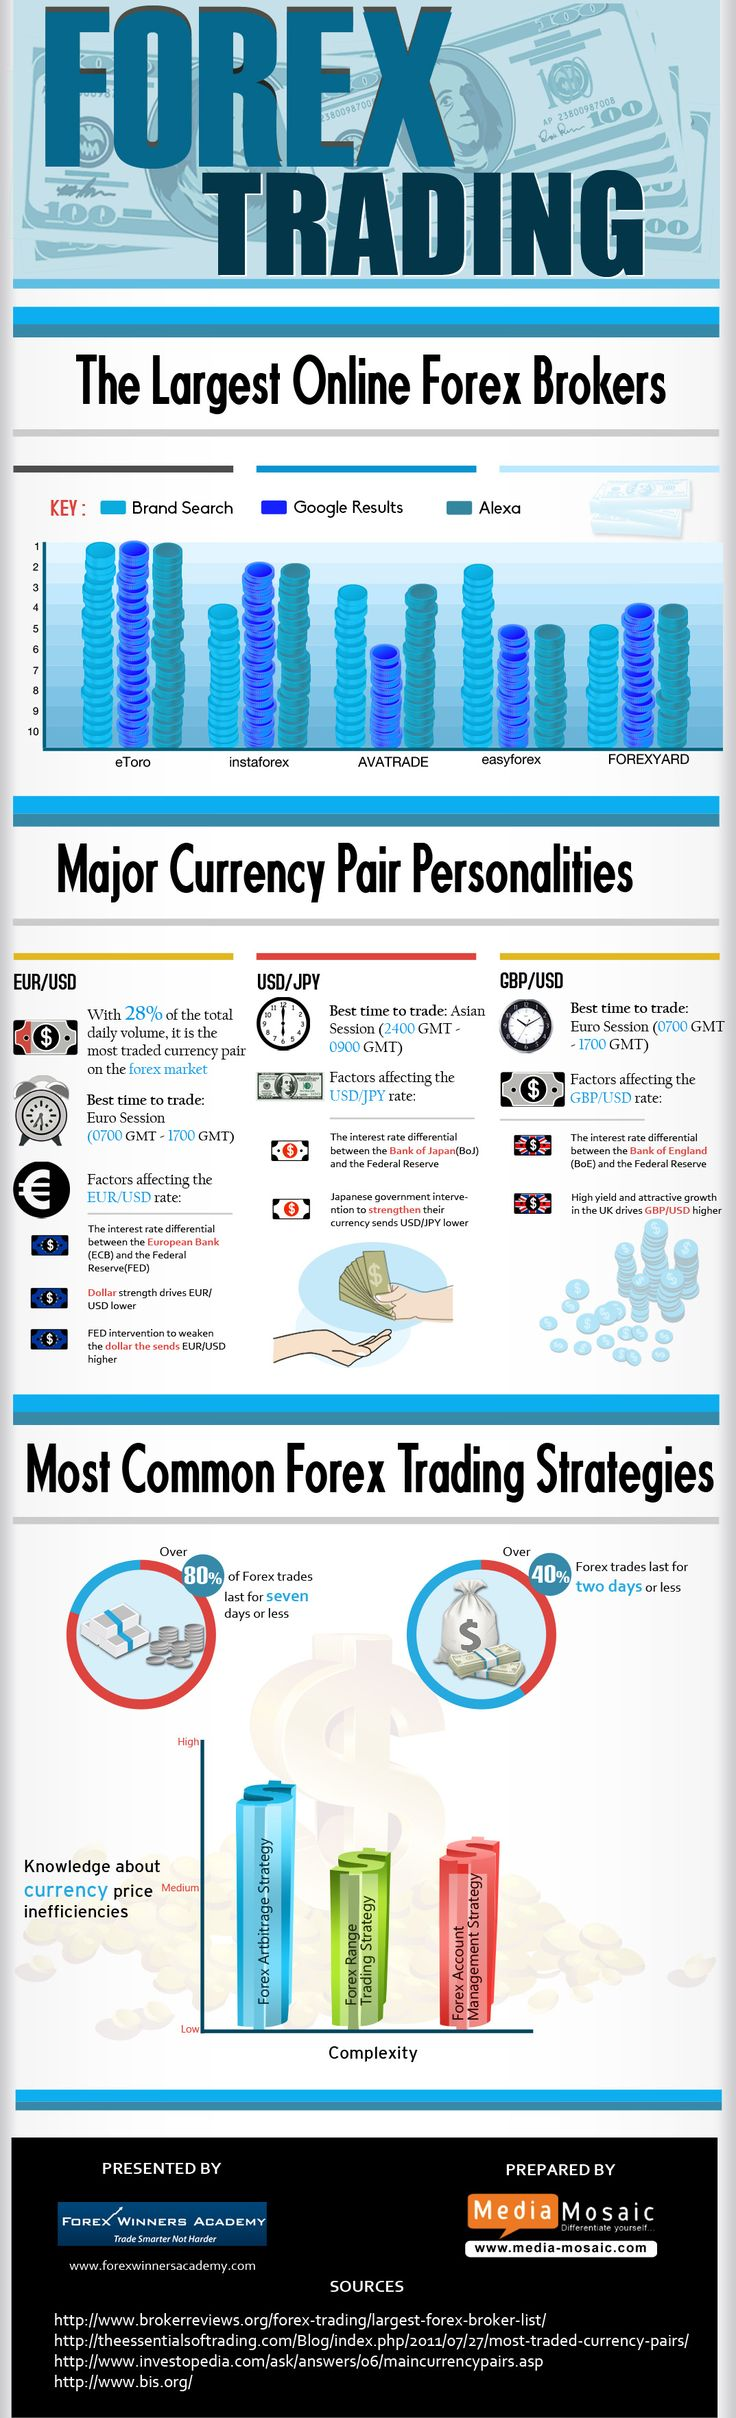 Where can i trade fx options